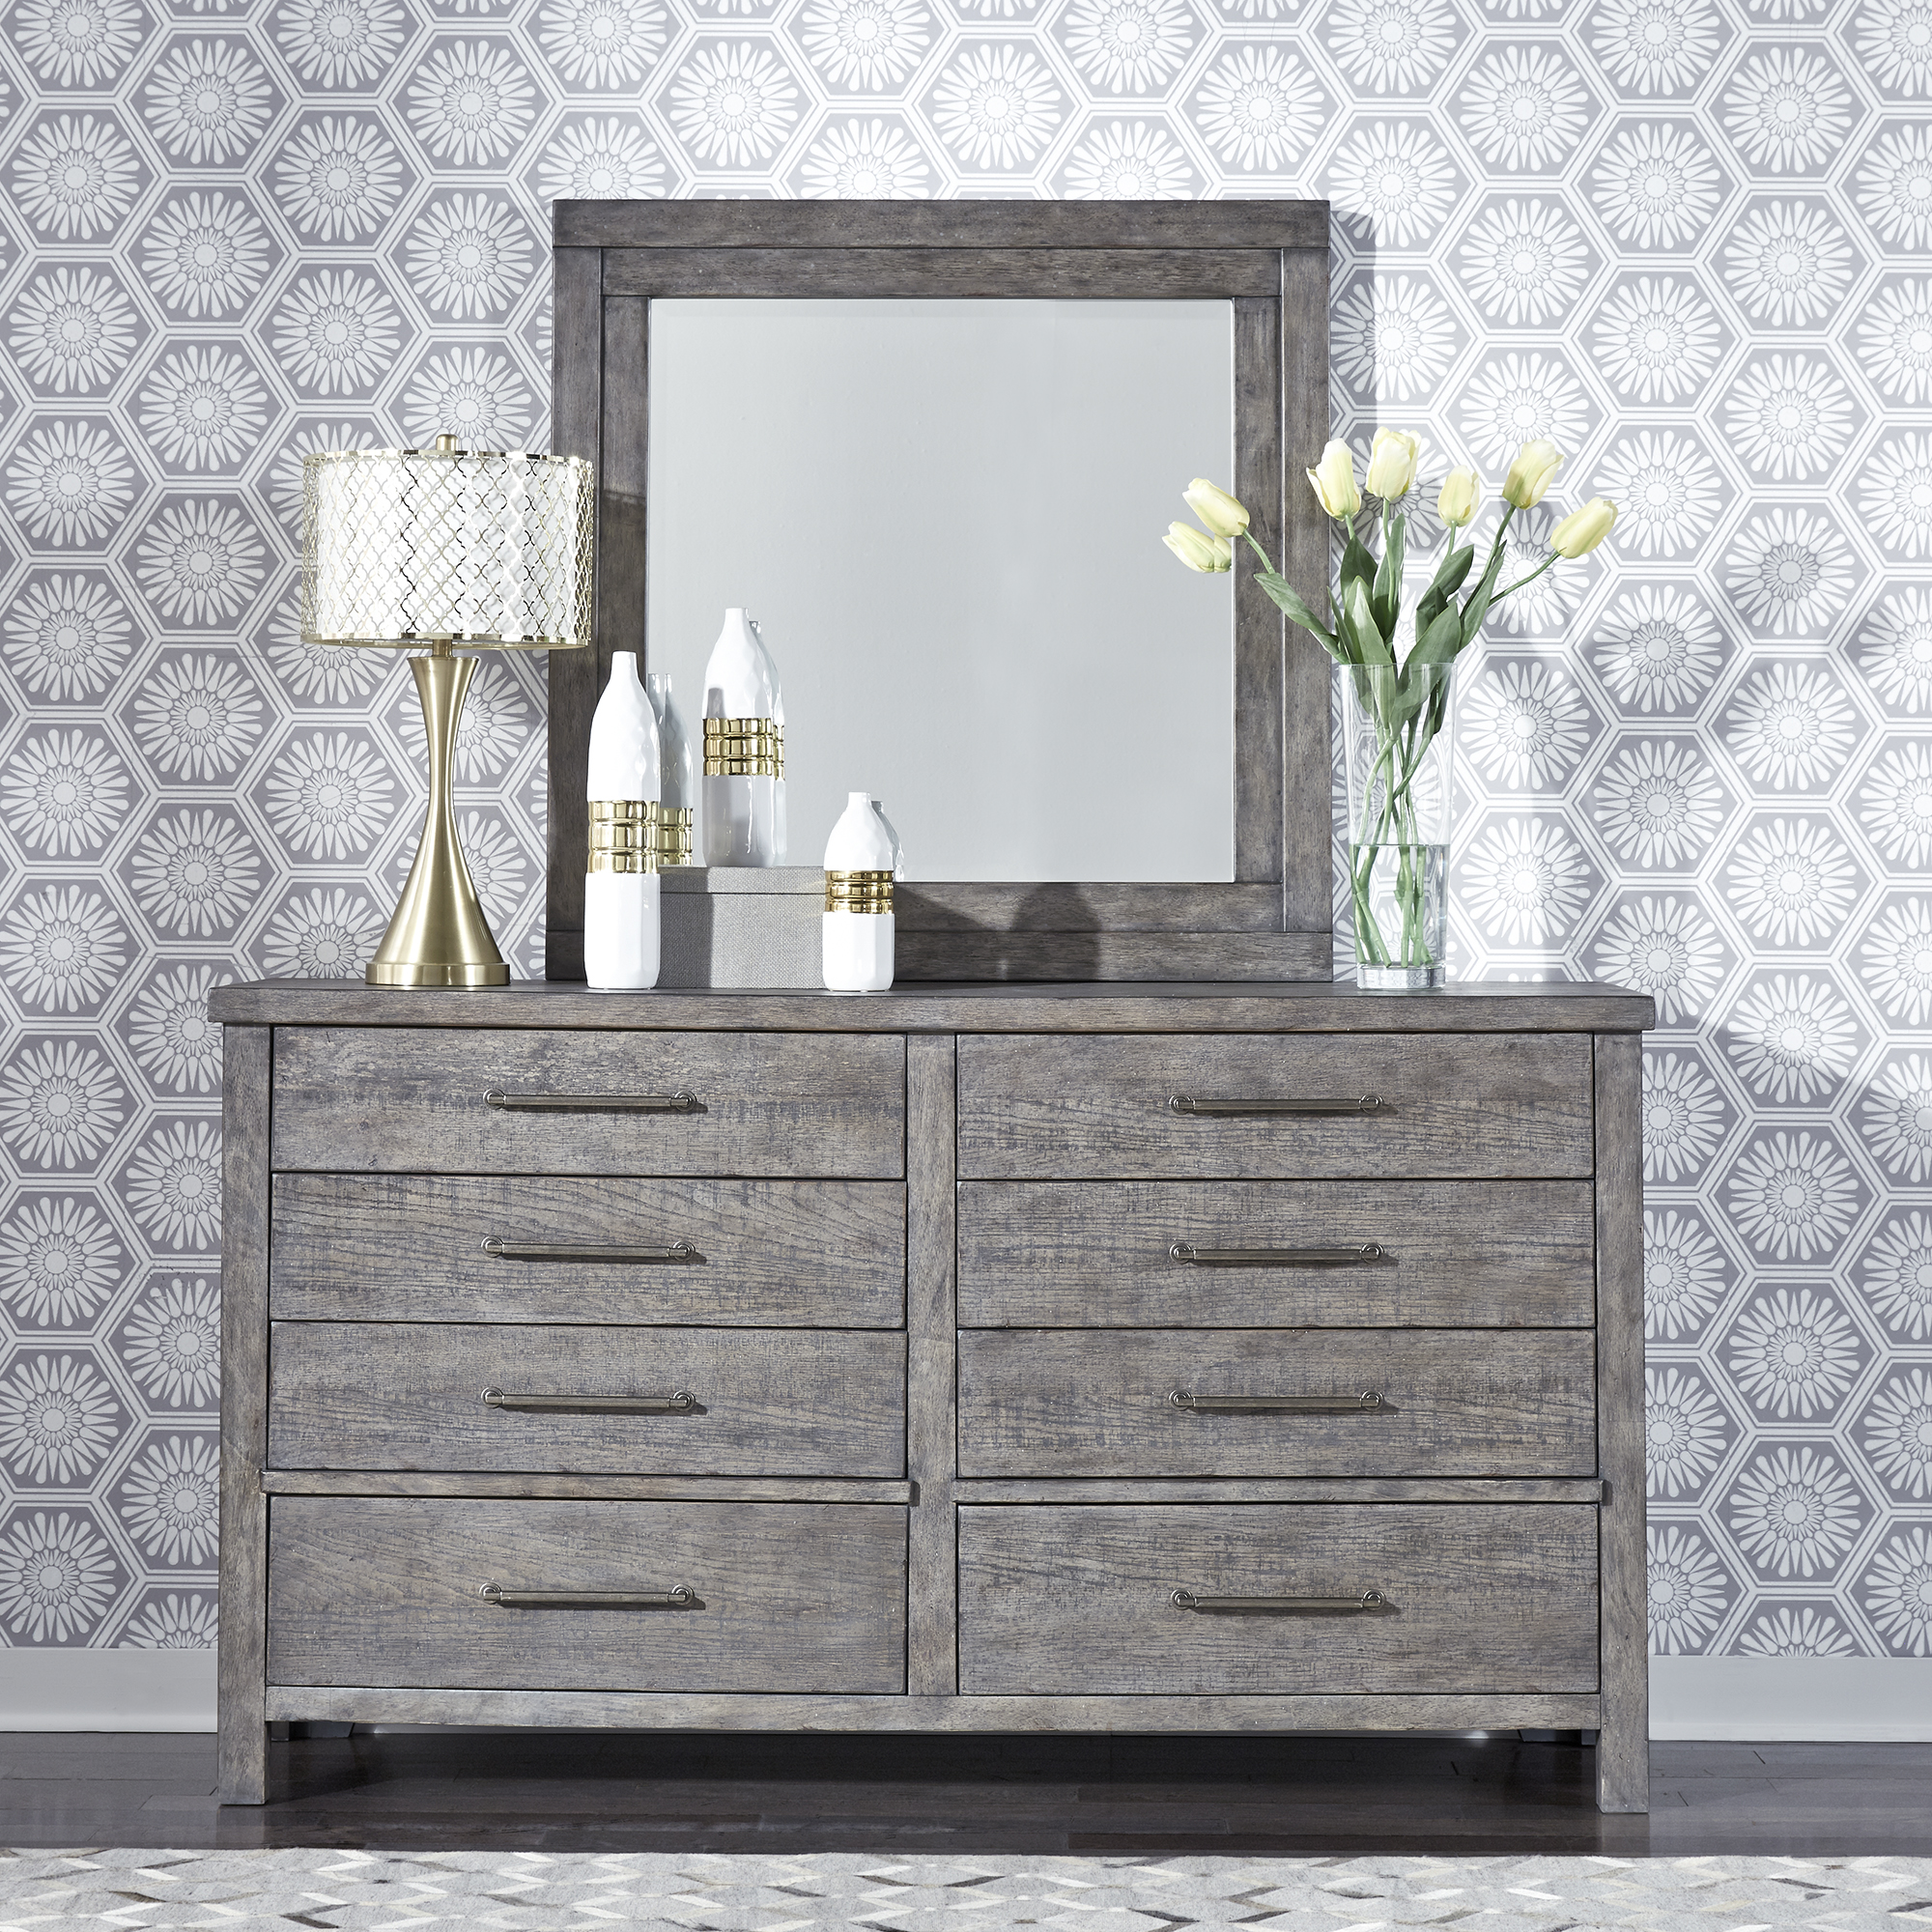 Modern Farmhouse Queen Storage Bed Dresser Mirror Chest By Liberty Furniture 406 Br Qsbdmc Bruce Furniture Floor Covering